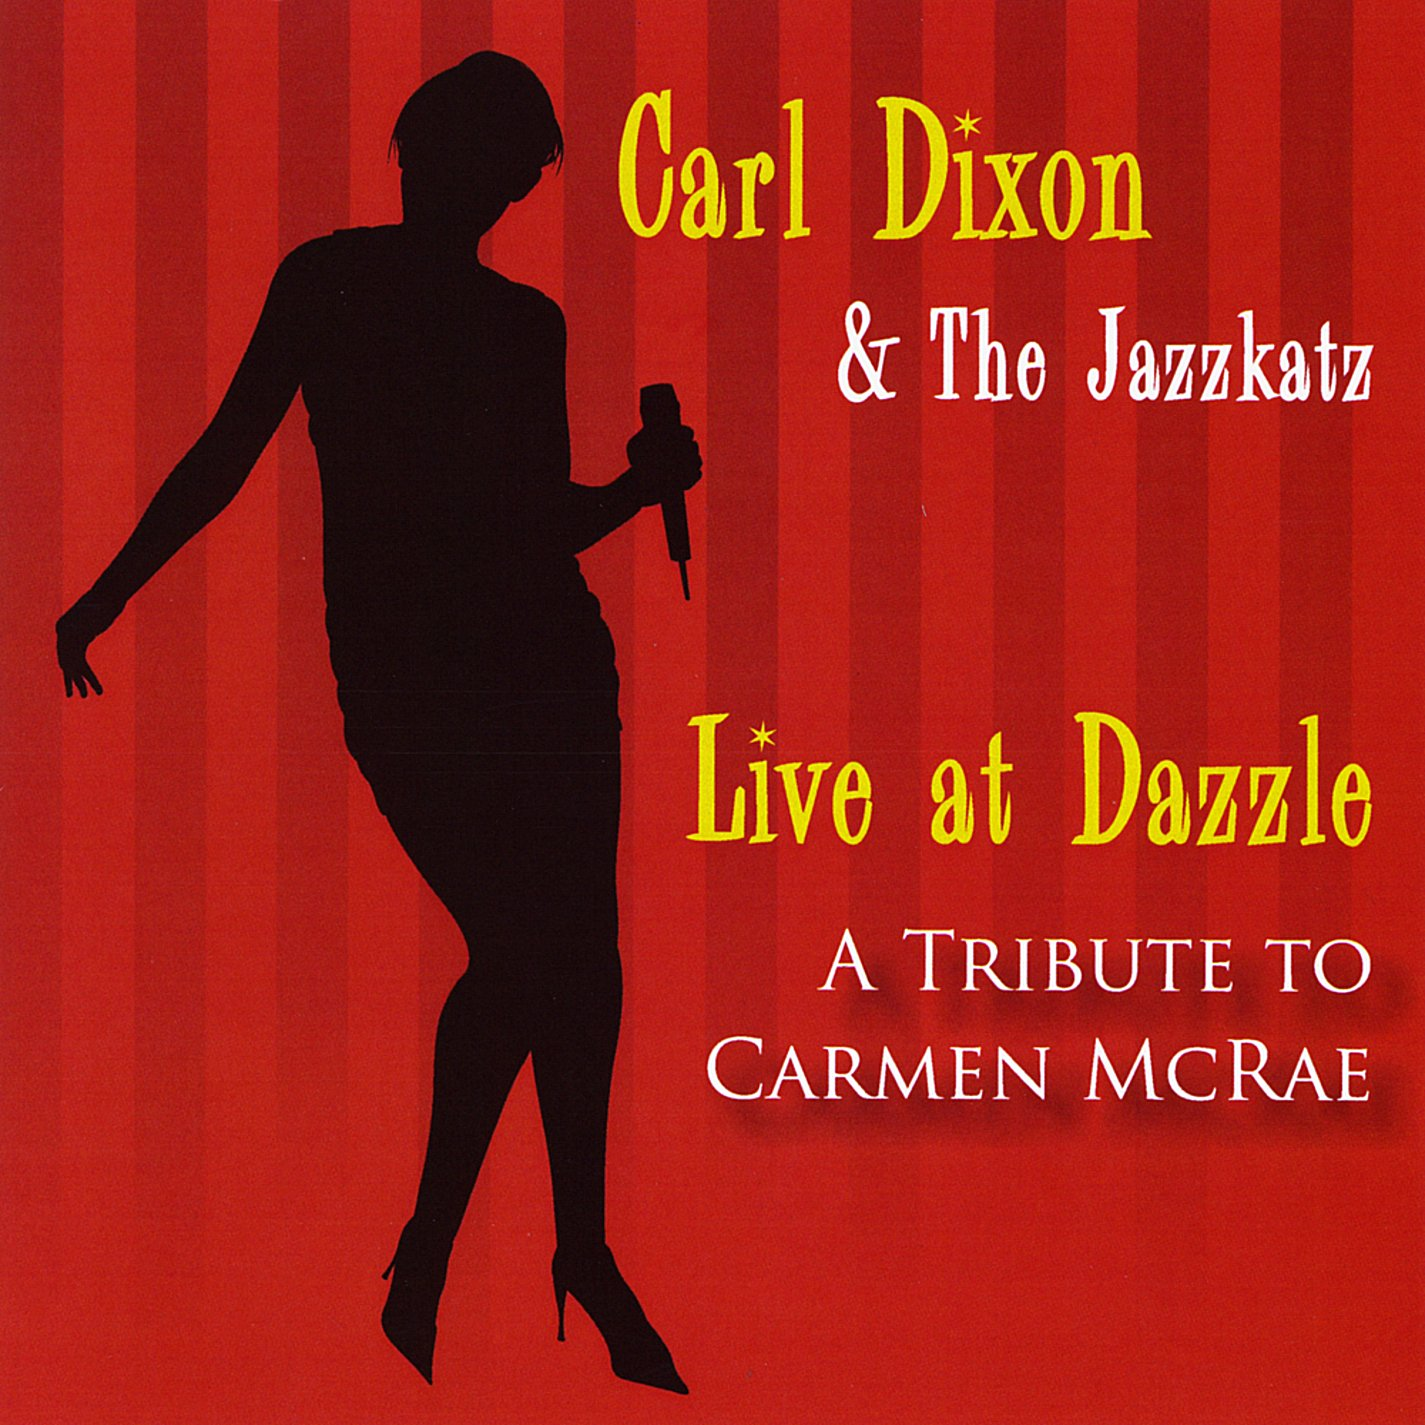 Live at Dazzle: A Tribute to Carmen Mcrae